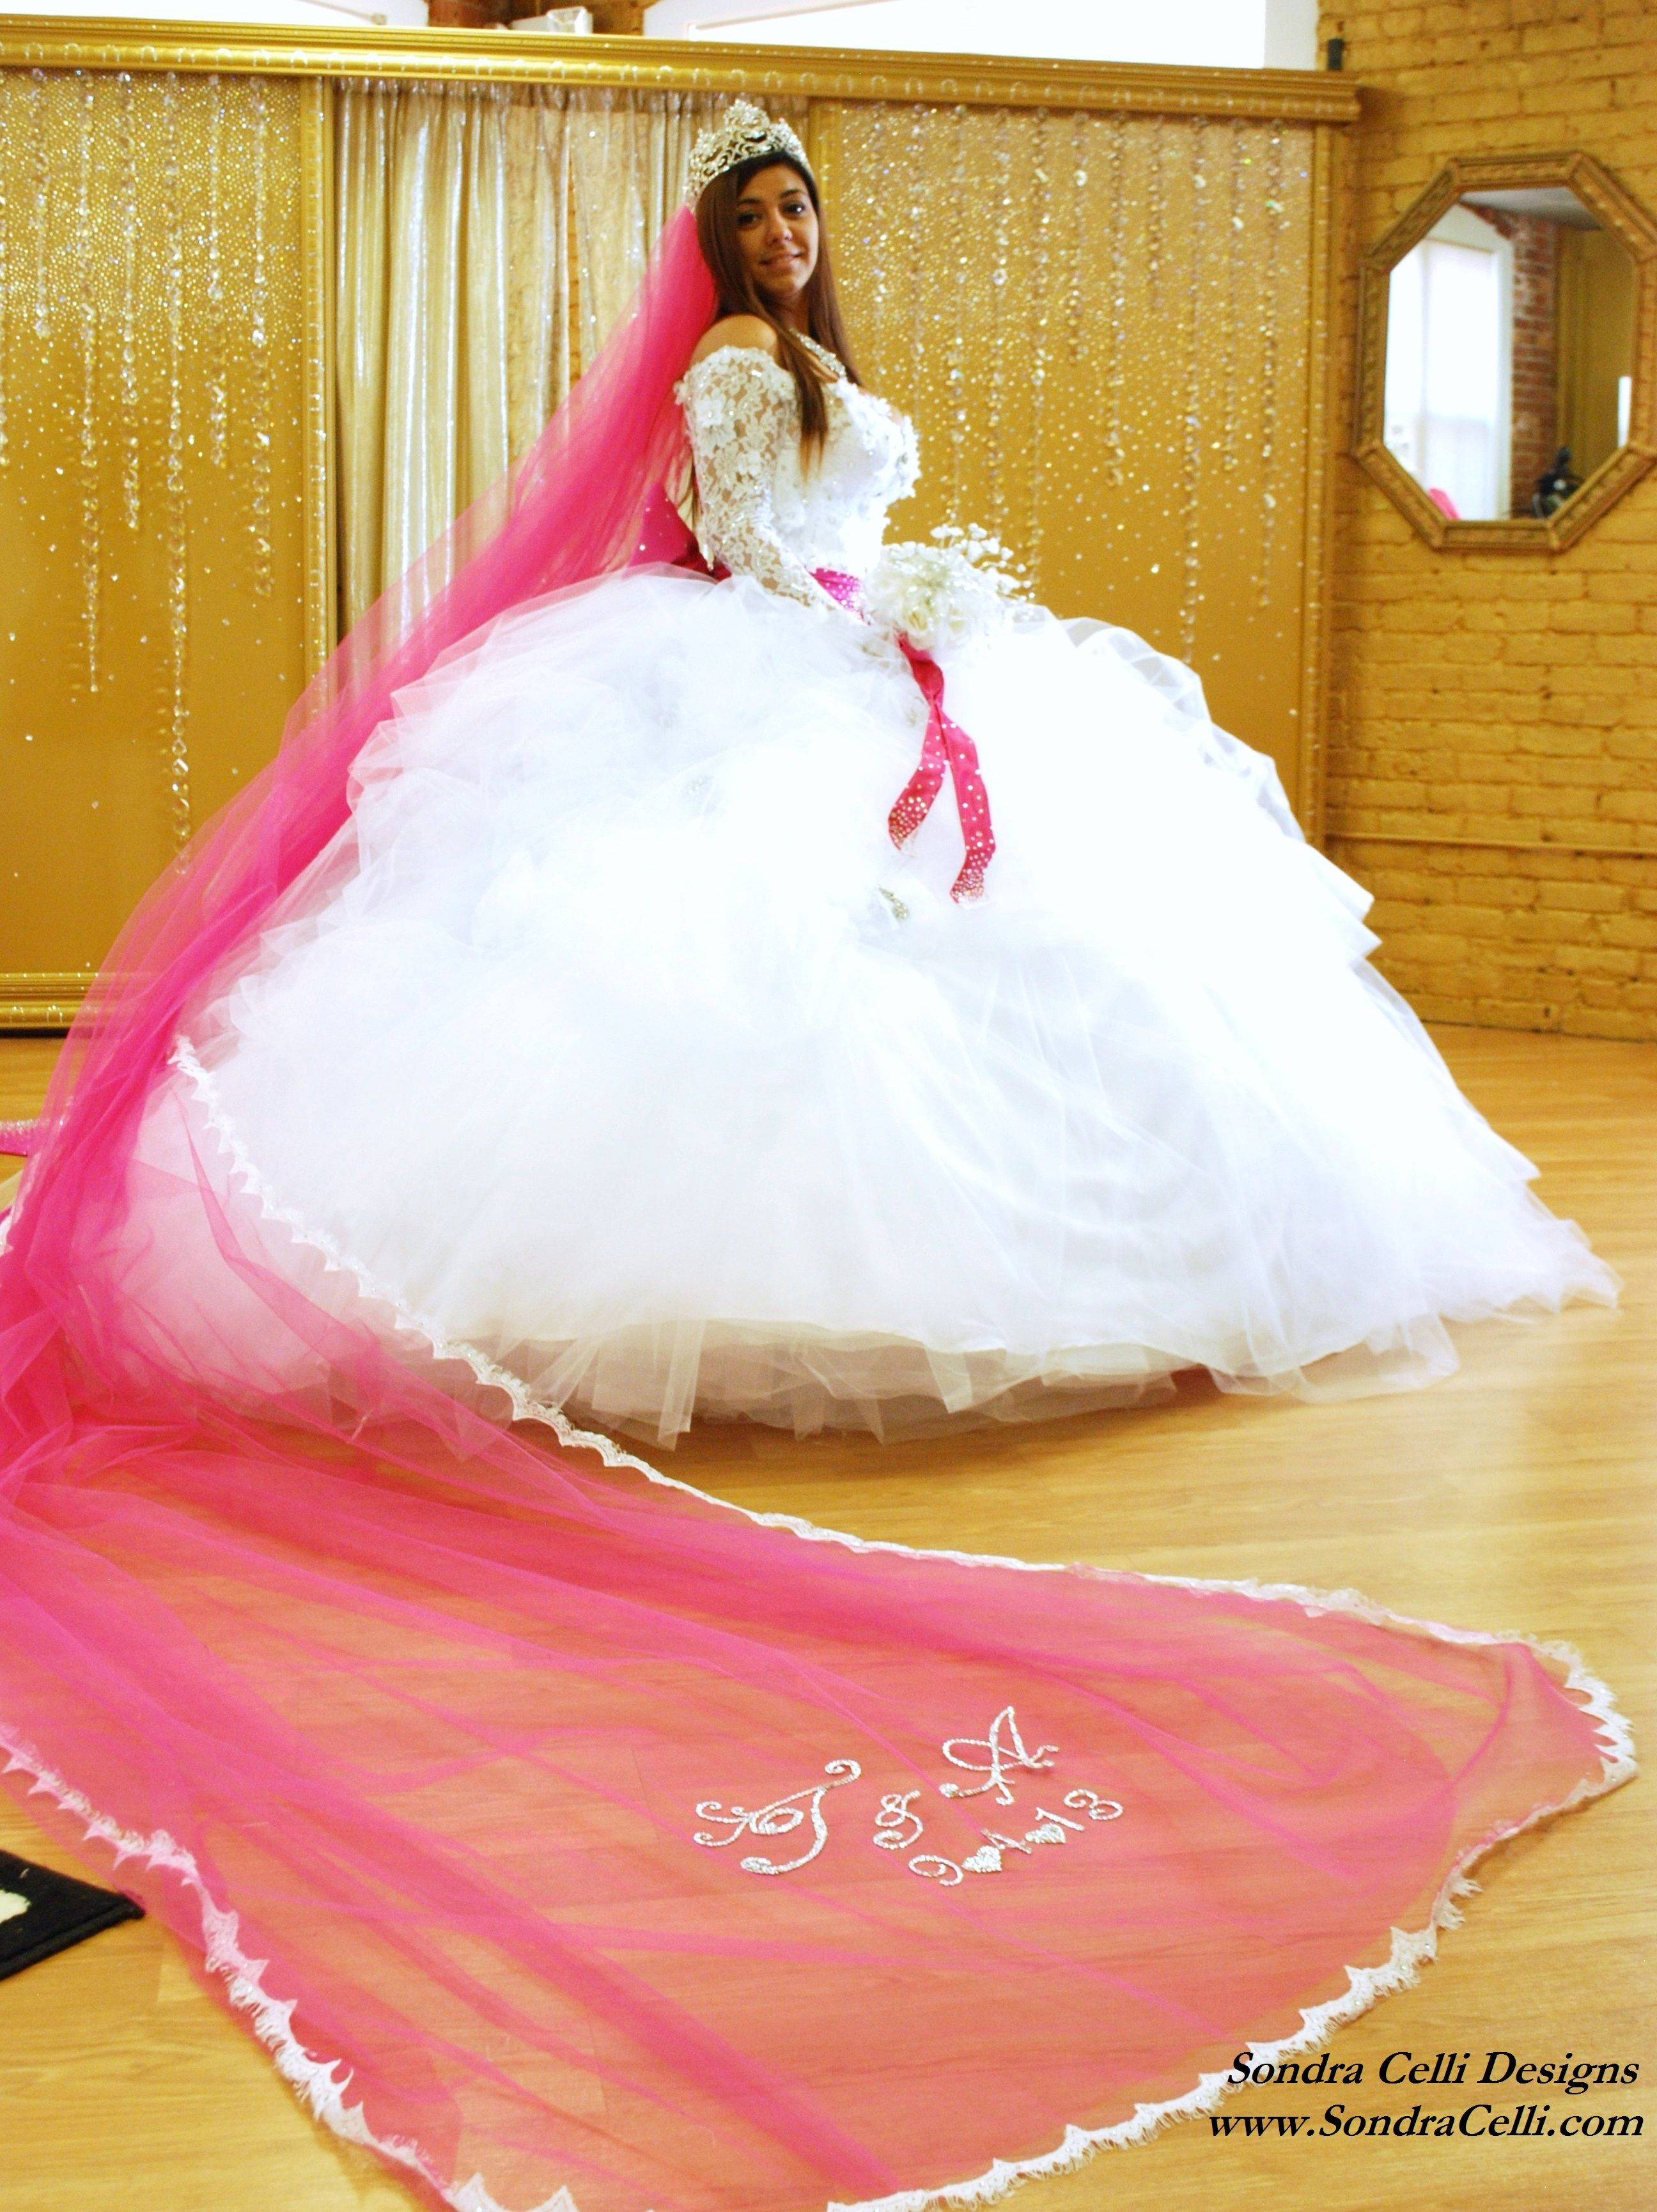 Sondra celli wedding dresses  White Chantilly lace and tulle gypsy wedding dress with hot pink